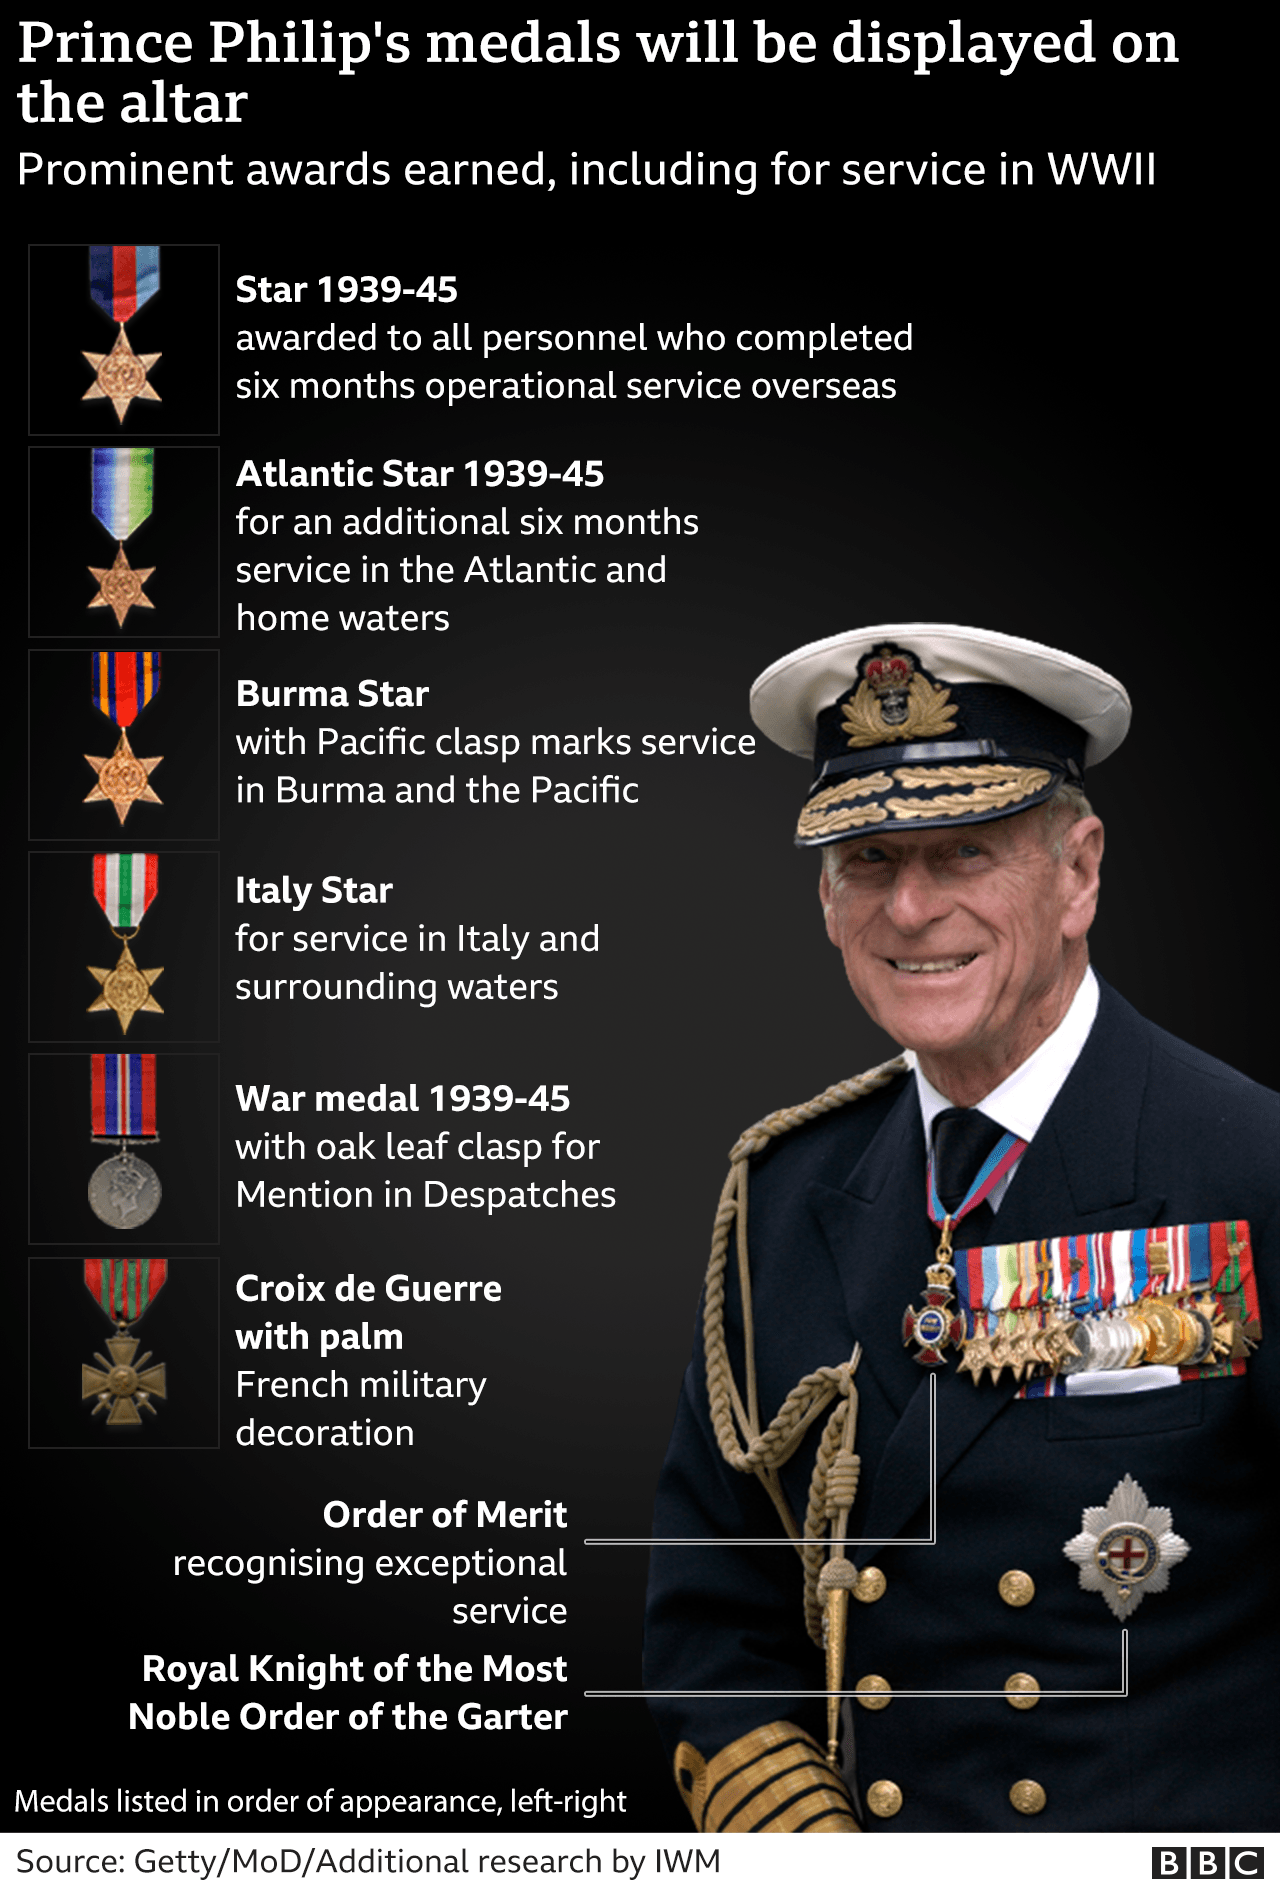 A few of the medals Prince Philip was awarded during his life and career.